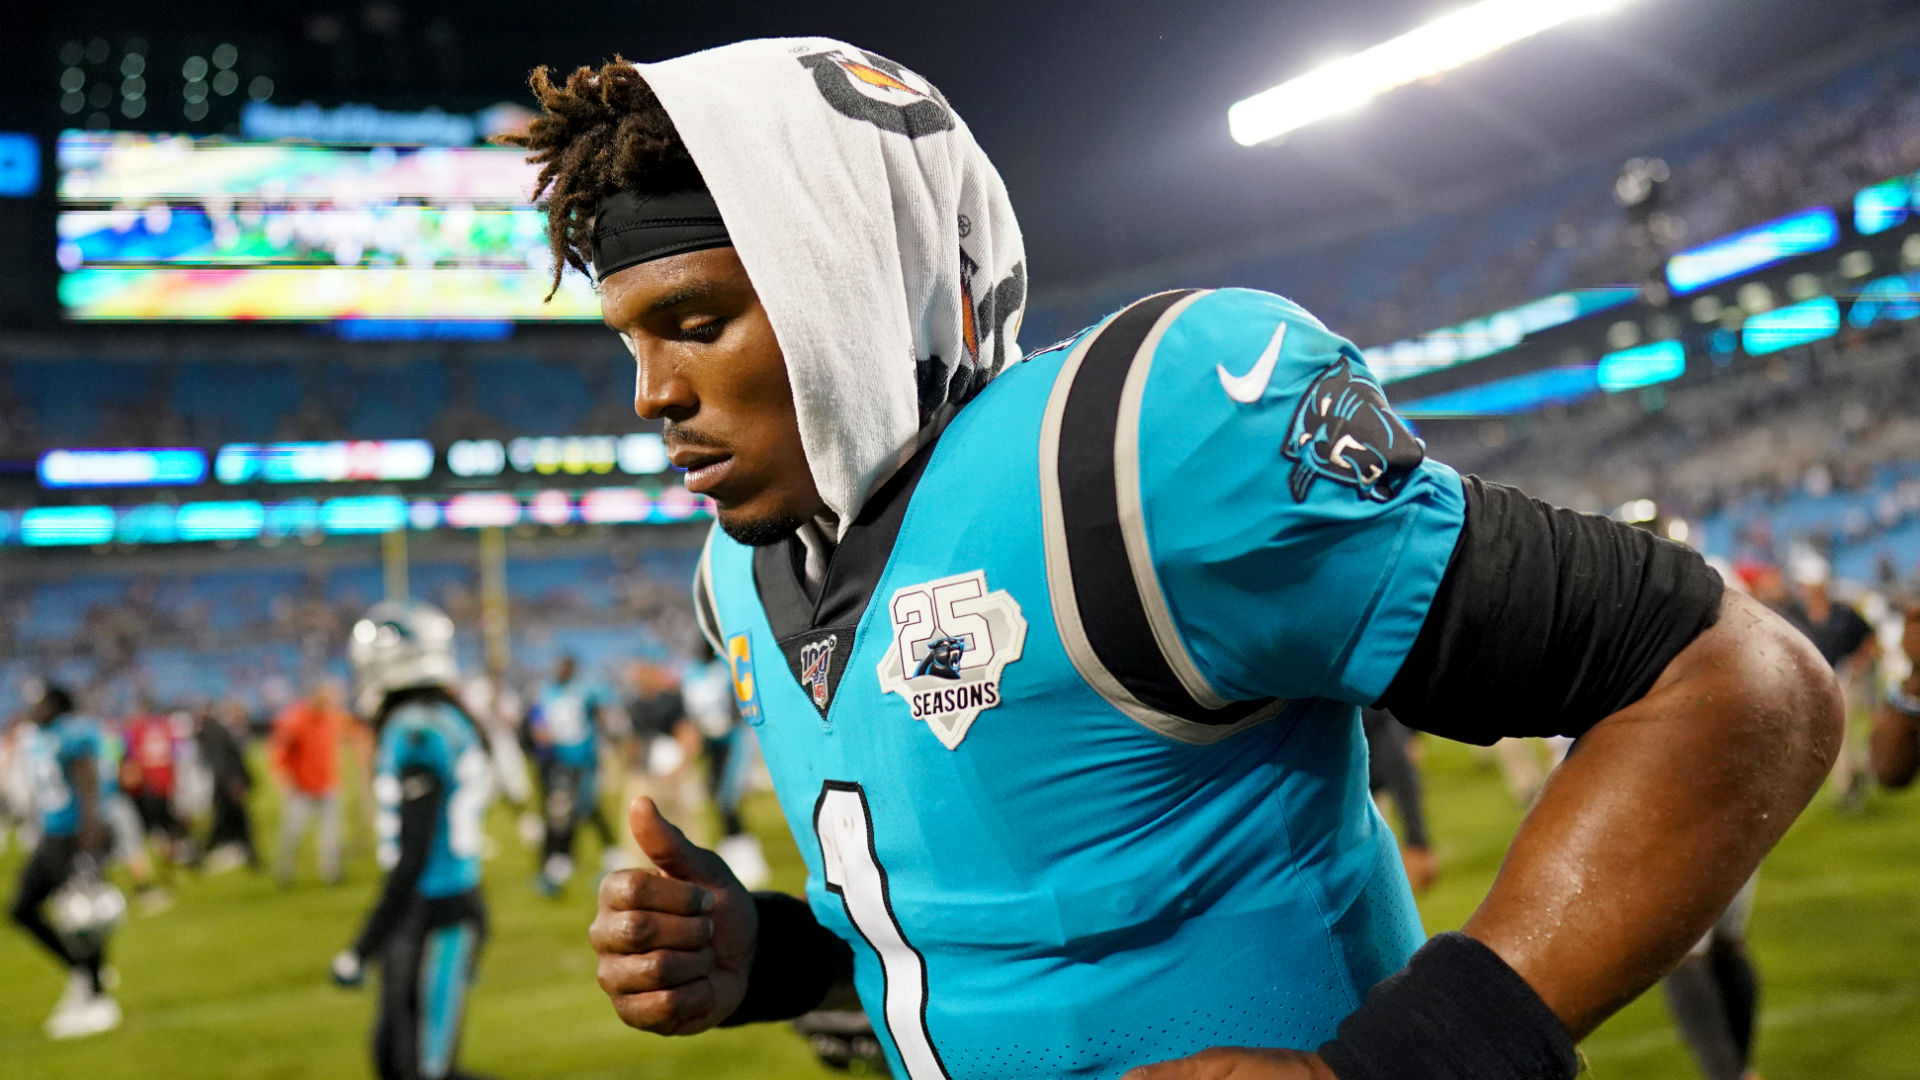 Former Cam Newton teammate says Panthers mismanaged injuries for years: 'They've been doing him wrong' 1